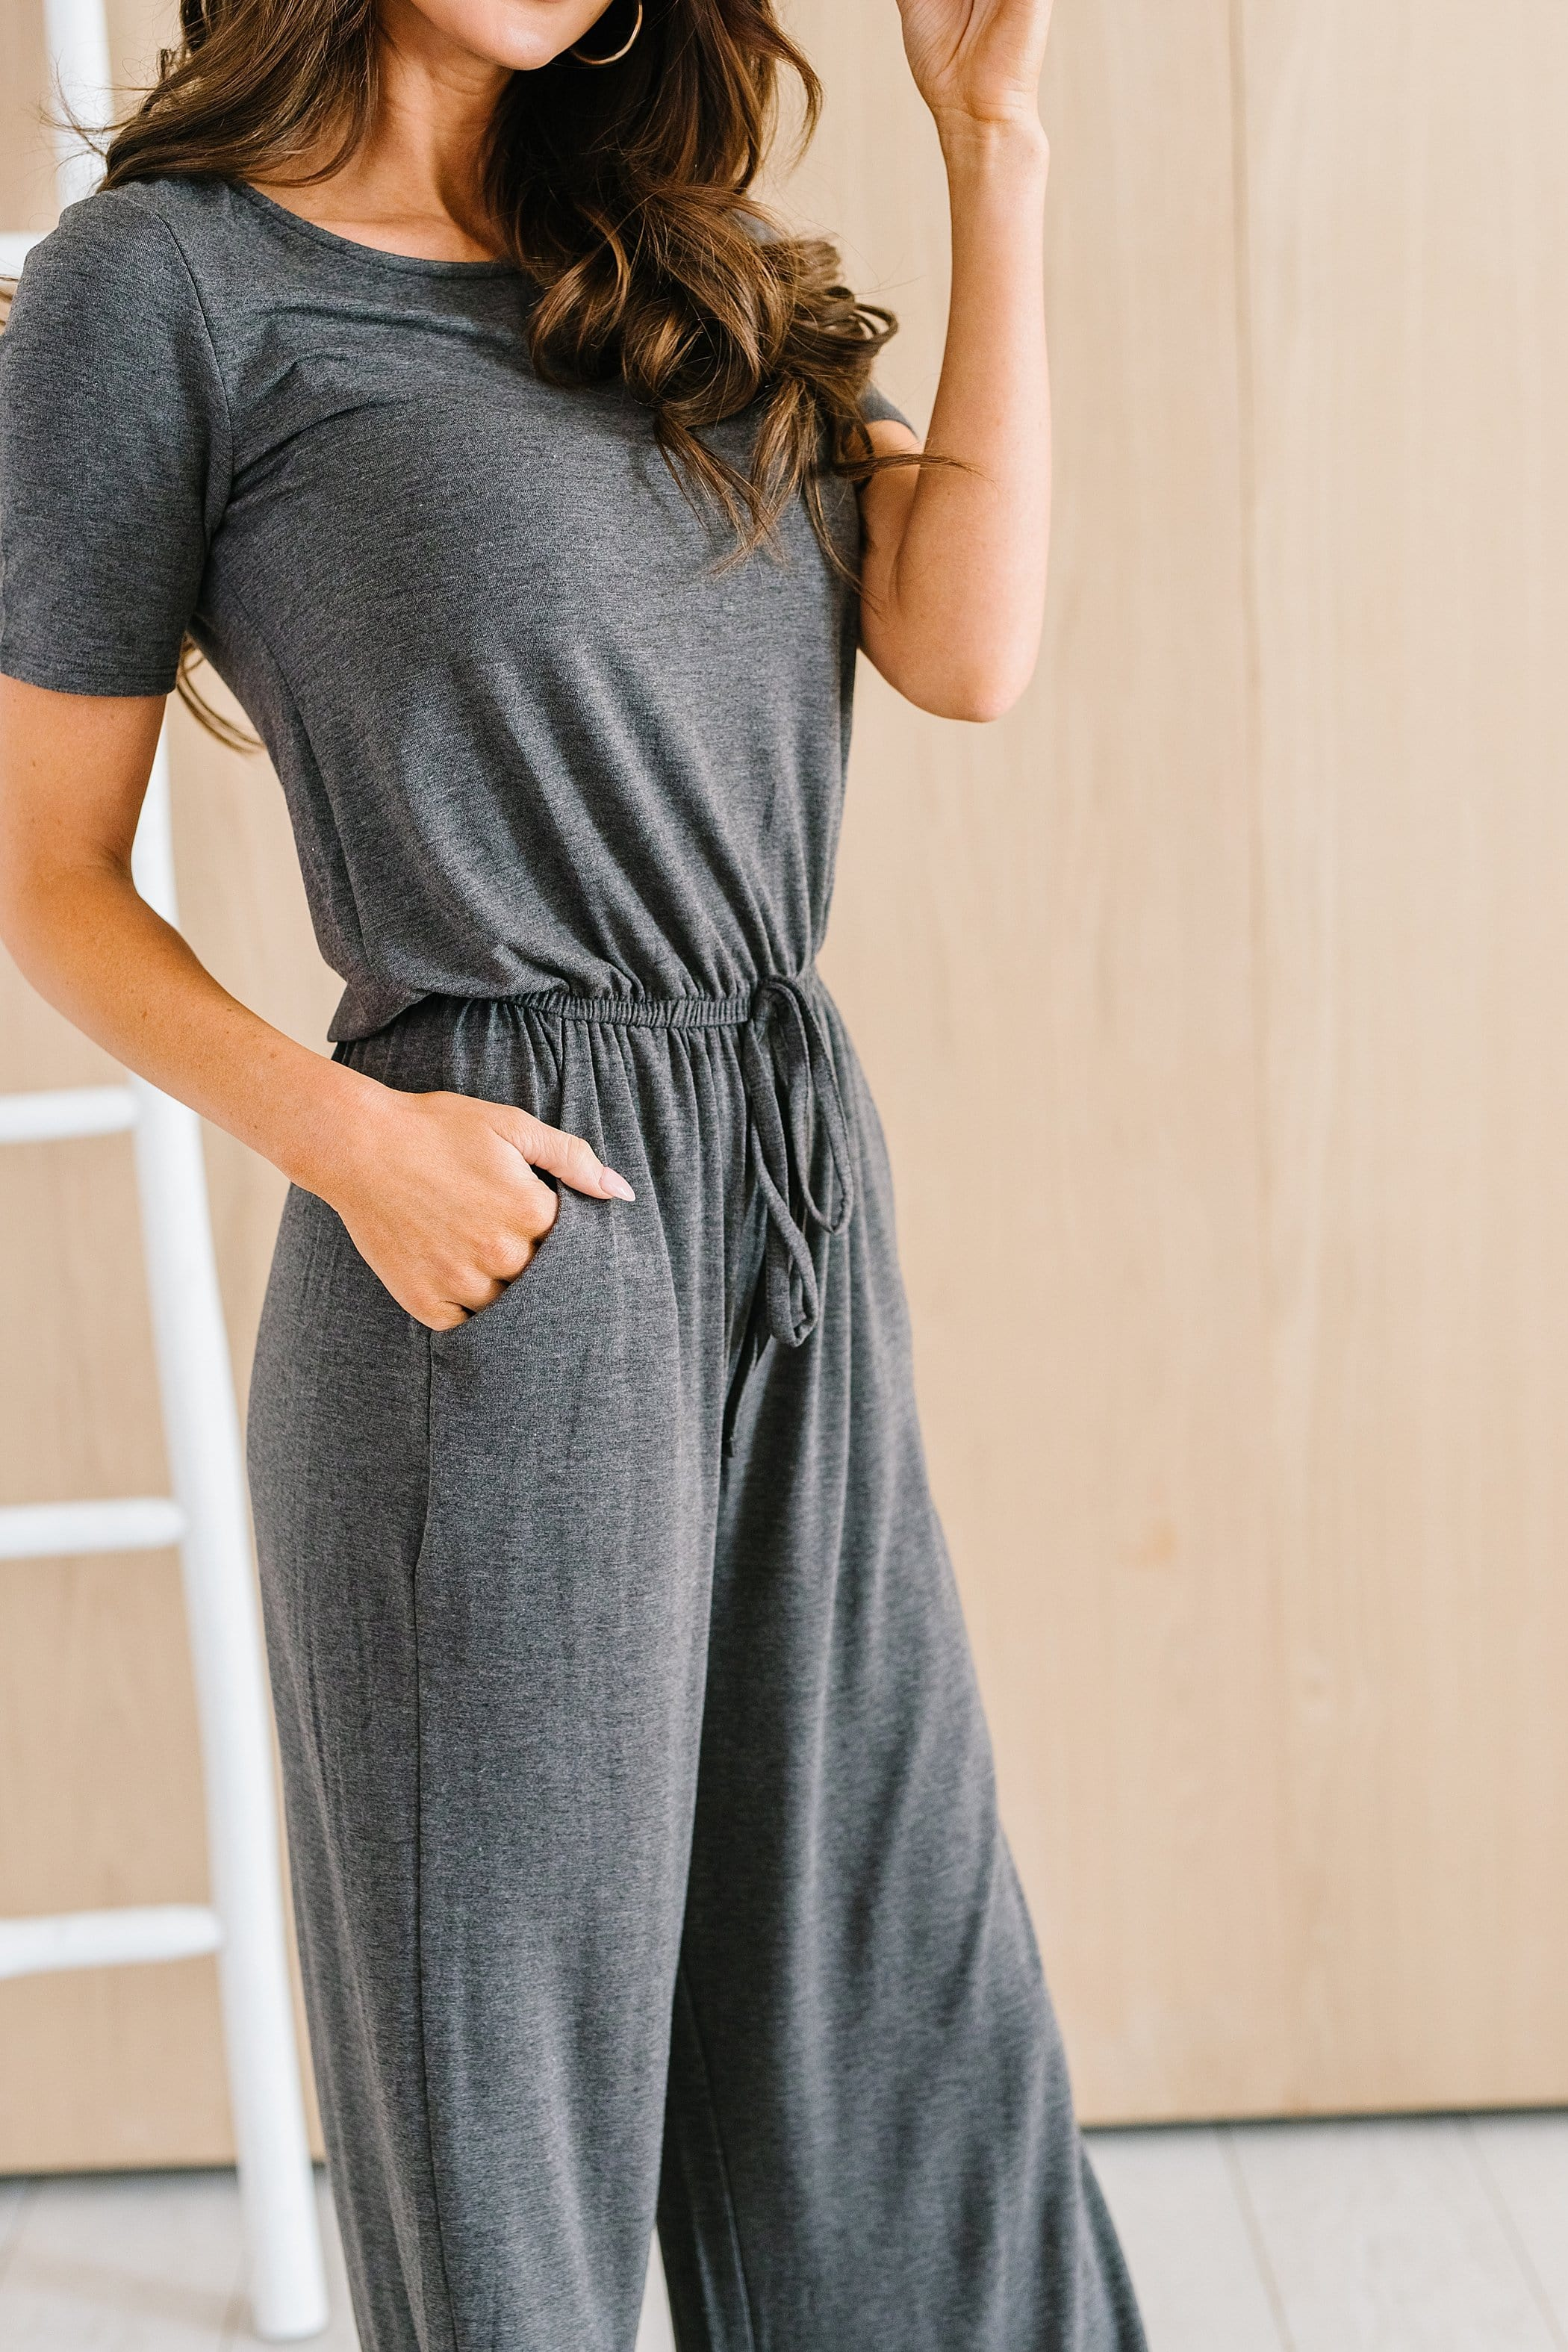 The Sierra Capri Romper in Blue Grey, Charcoal, Heather Grey, Light Olive and Rose